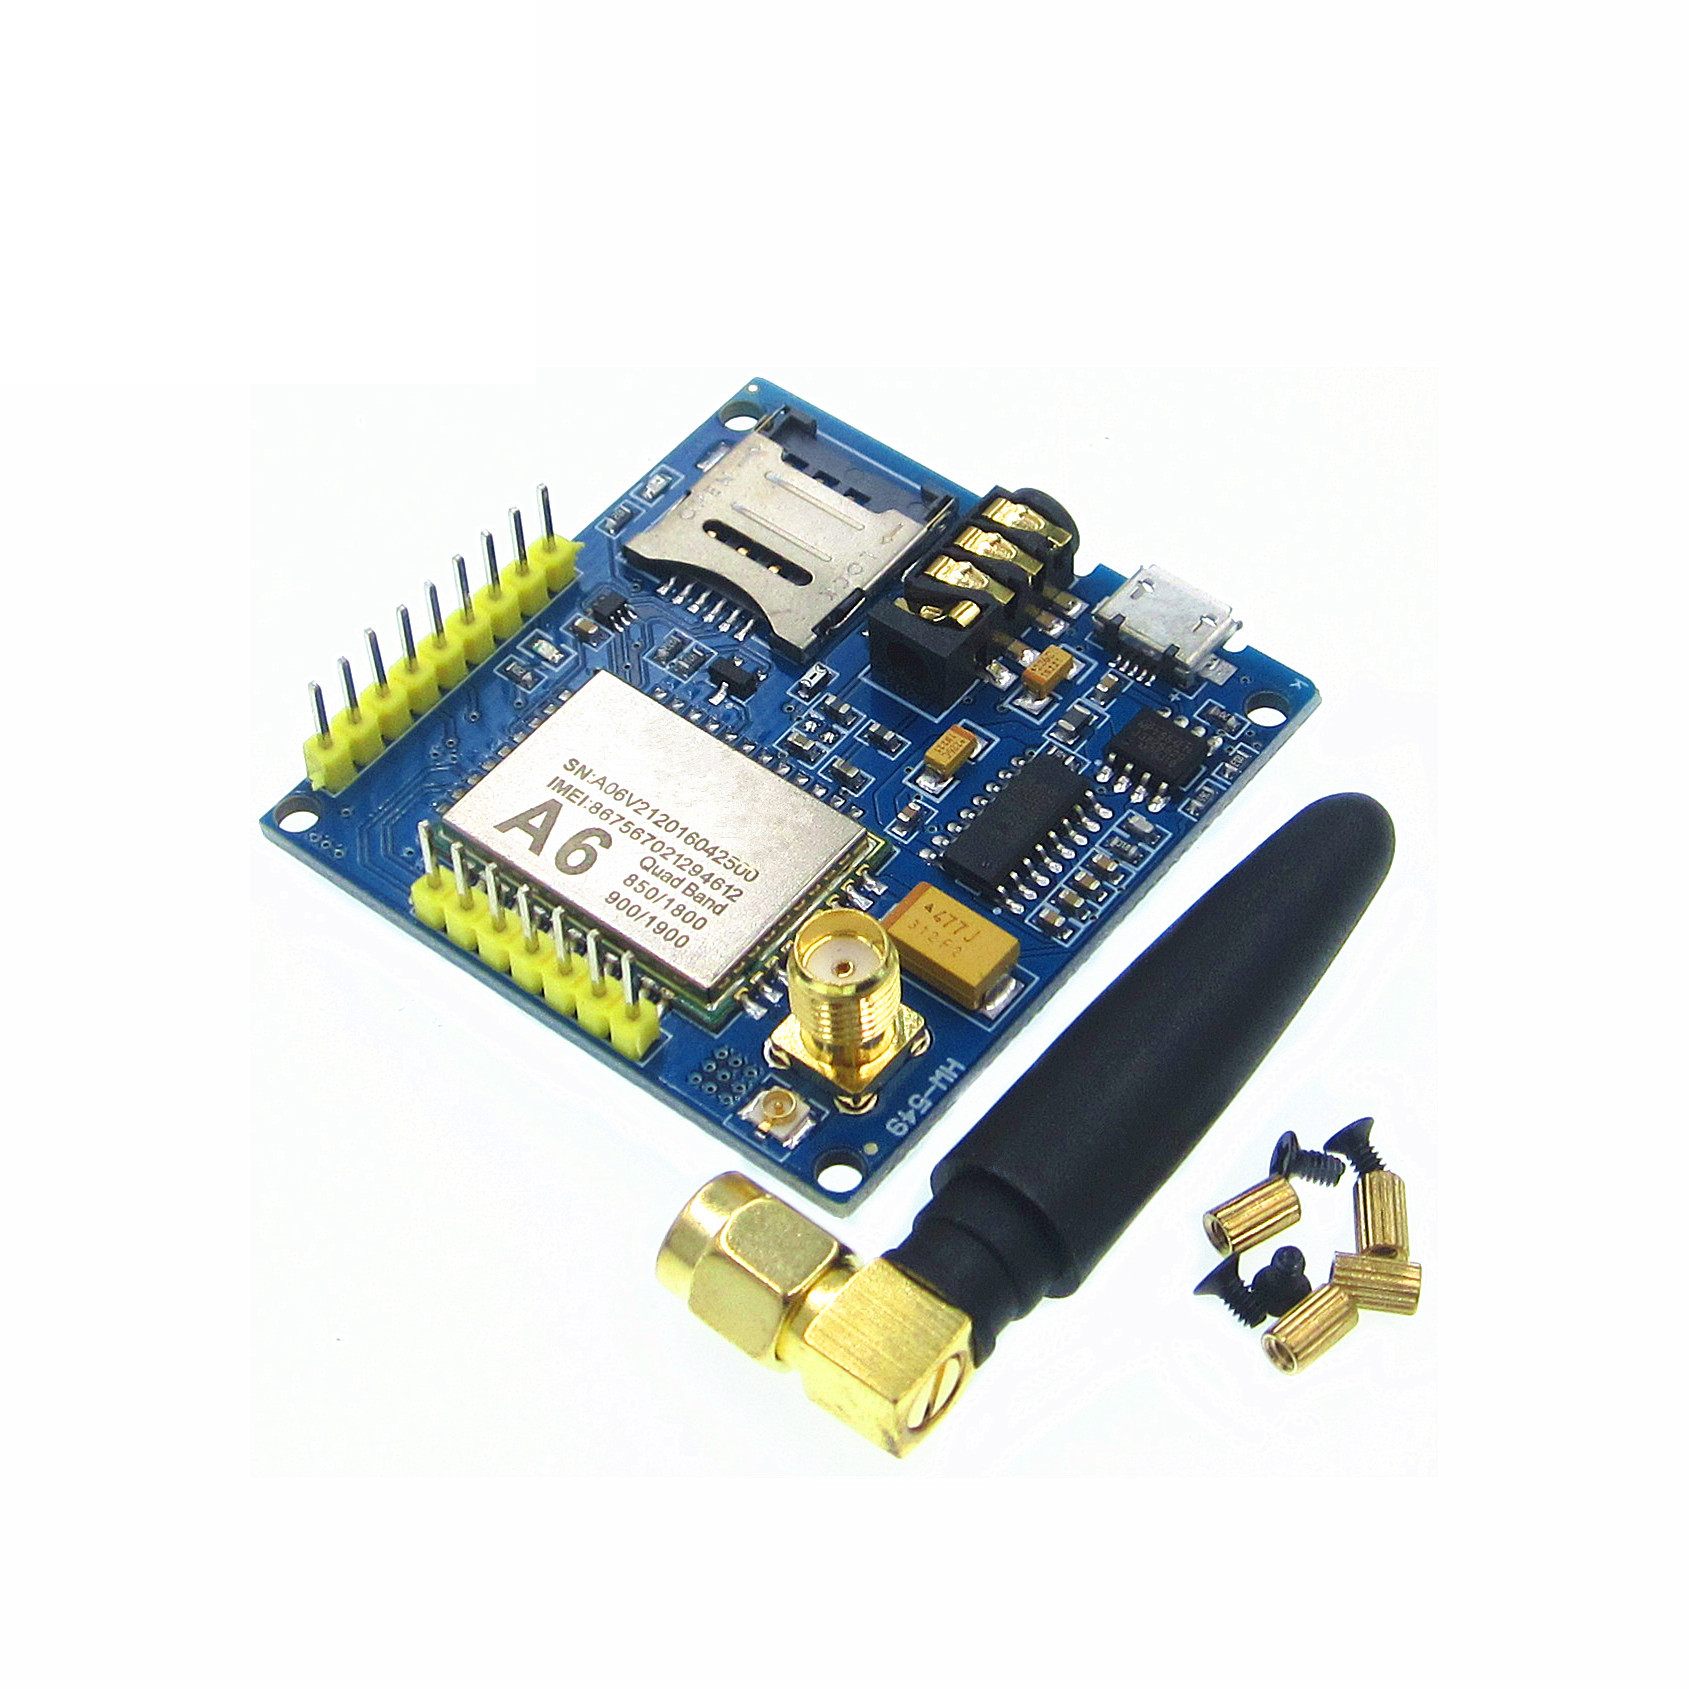 GPRS A6 Module, Text Messages, Development Board GSM GPRS Wireless Data Transmission Of Super SIM900A